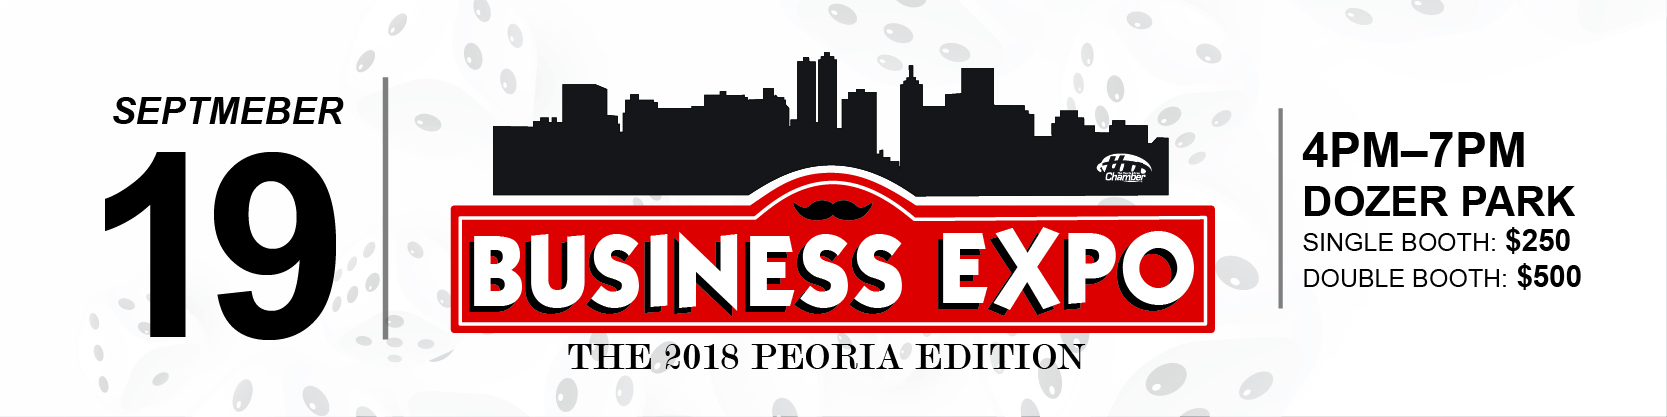 BusinessExpo-web.jpg